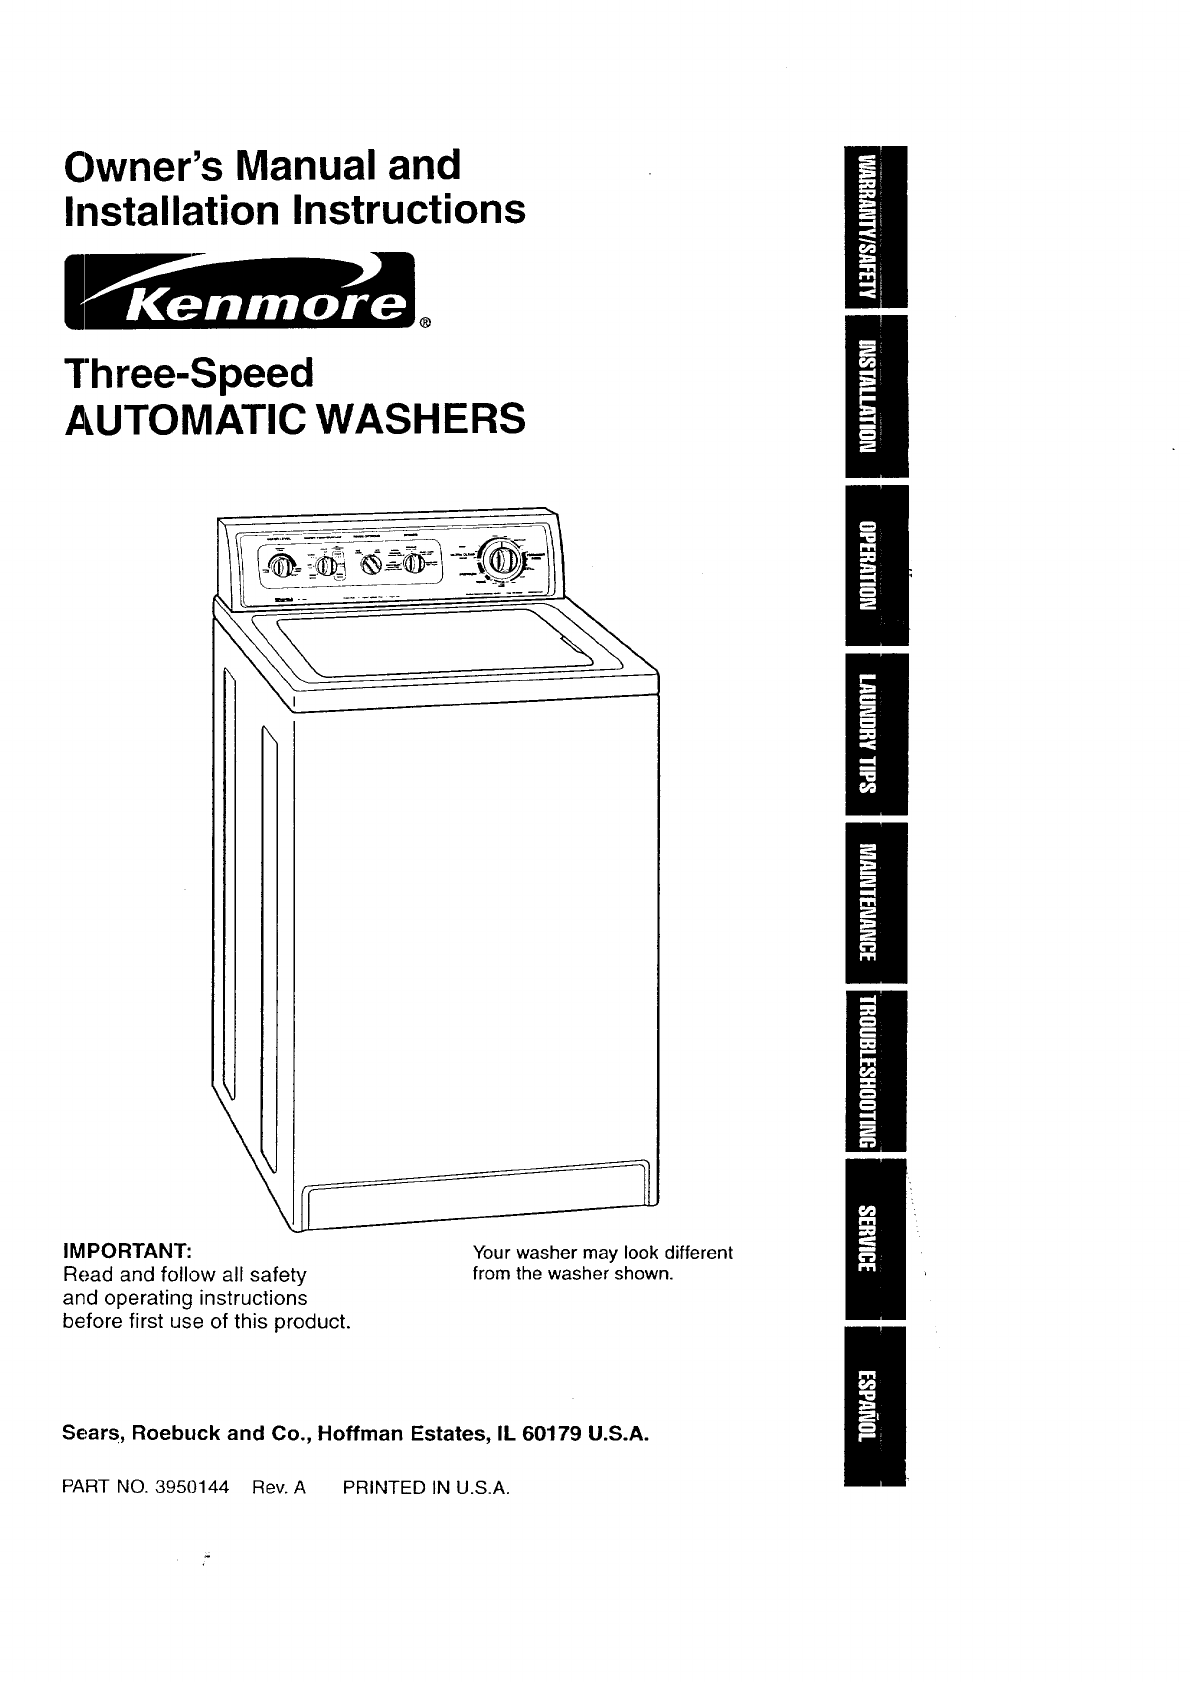 kenmore washer automatic washers user guide manualsonline com rh kitchen manualsonline com Super Capacity Kenmore 700 Series kenmore 700 series dryer owners manual